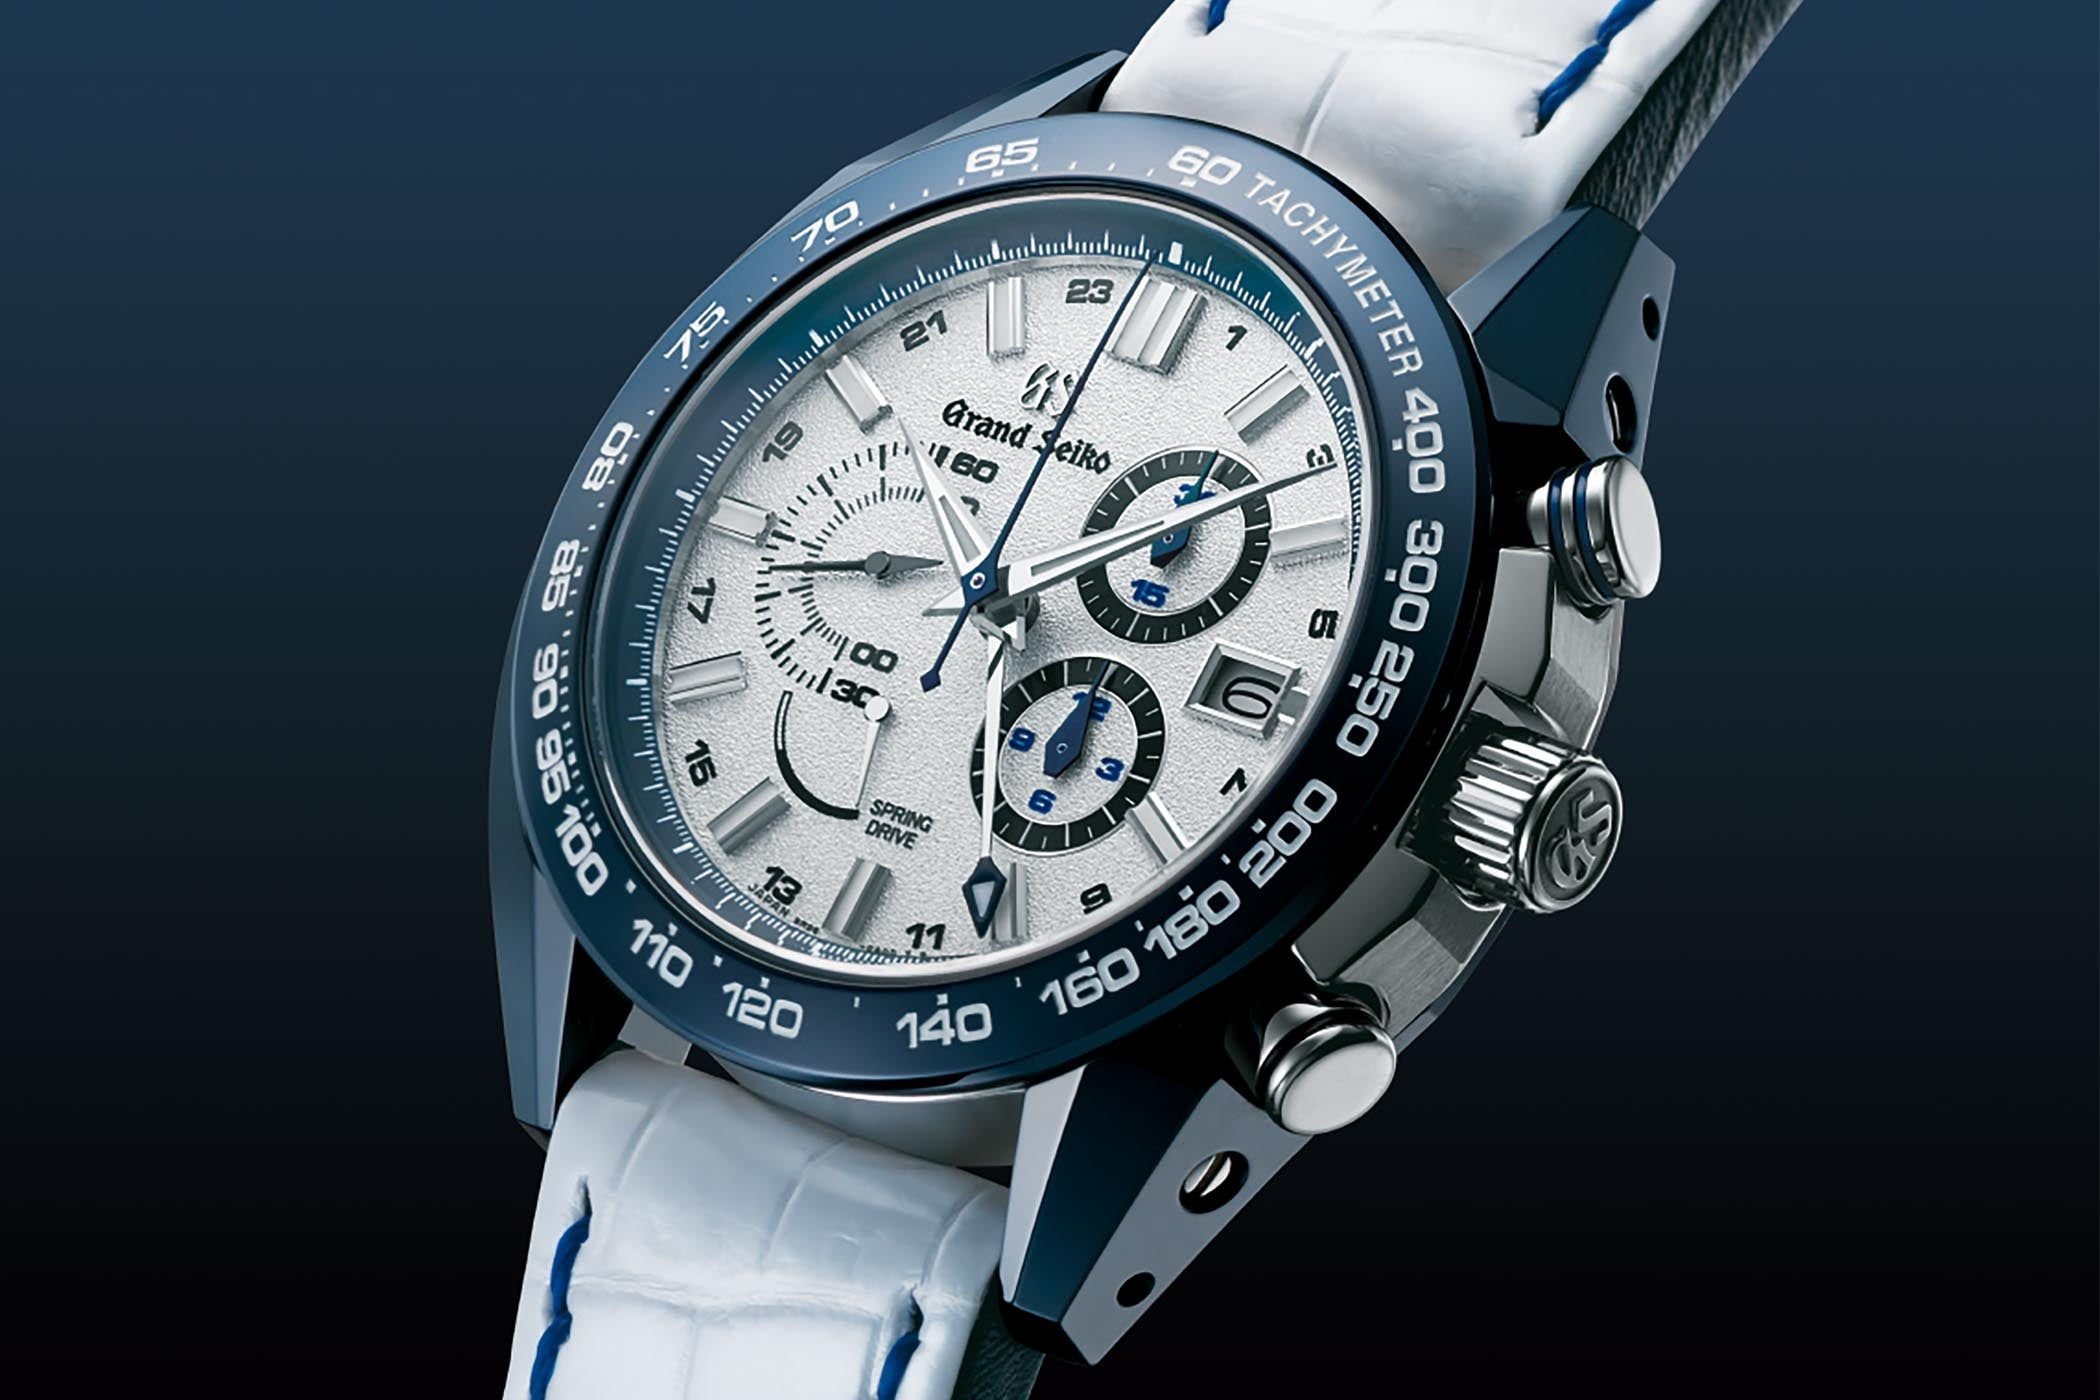 https://www.watchlounge.com/introducing-grand-seiko-spring-drive-chronograph-sbgc229-celebrating-20-years-of-spring-drive-and-50-years-of-nissan-gt-r/